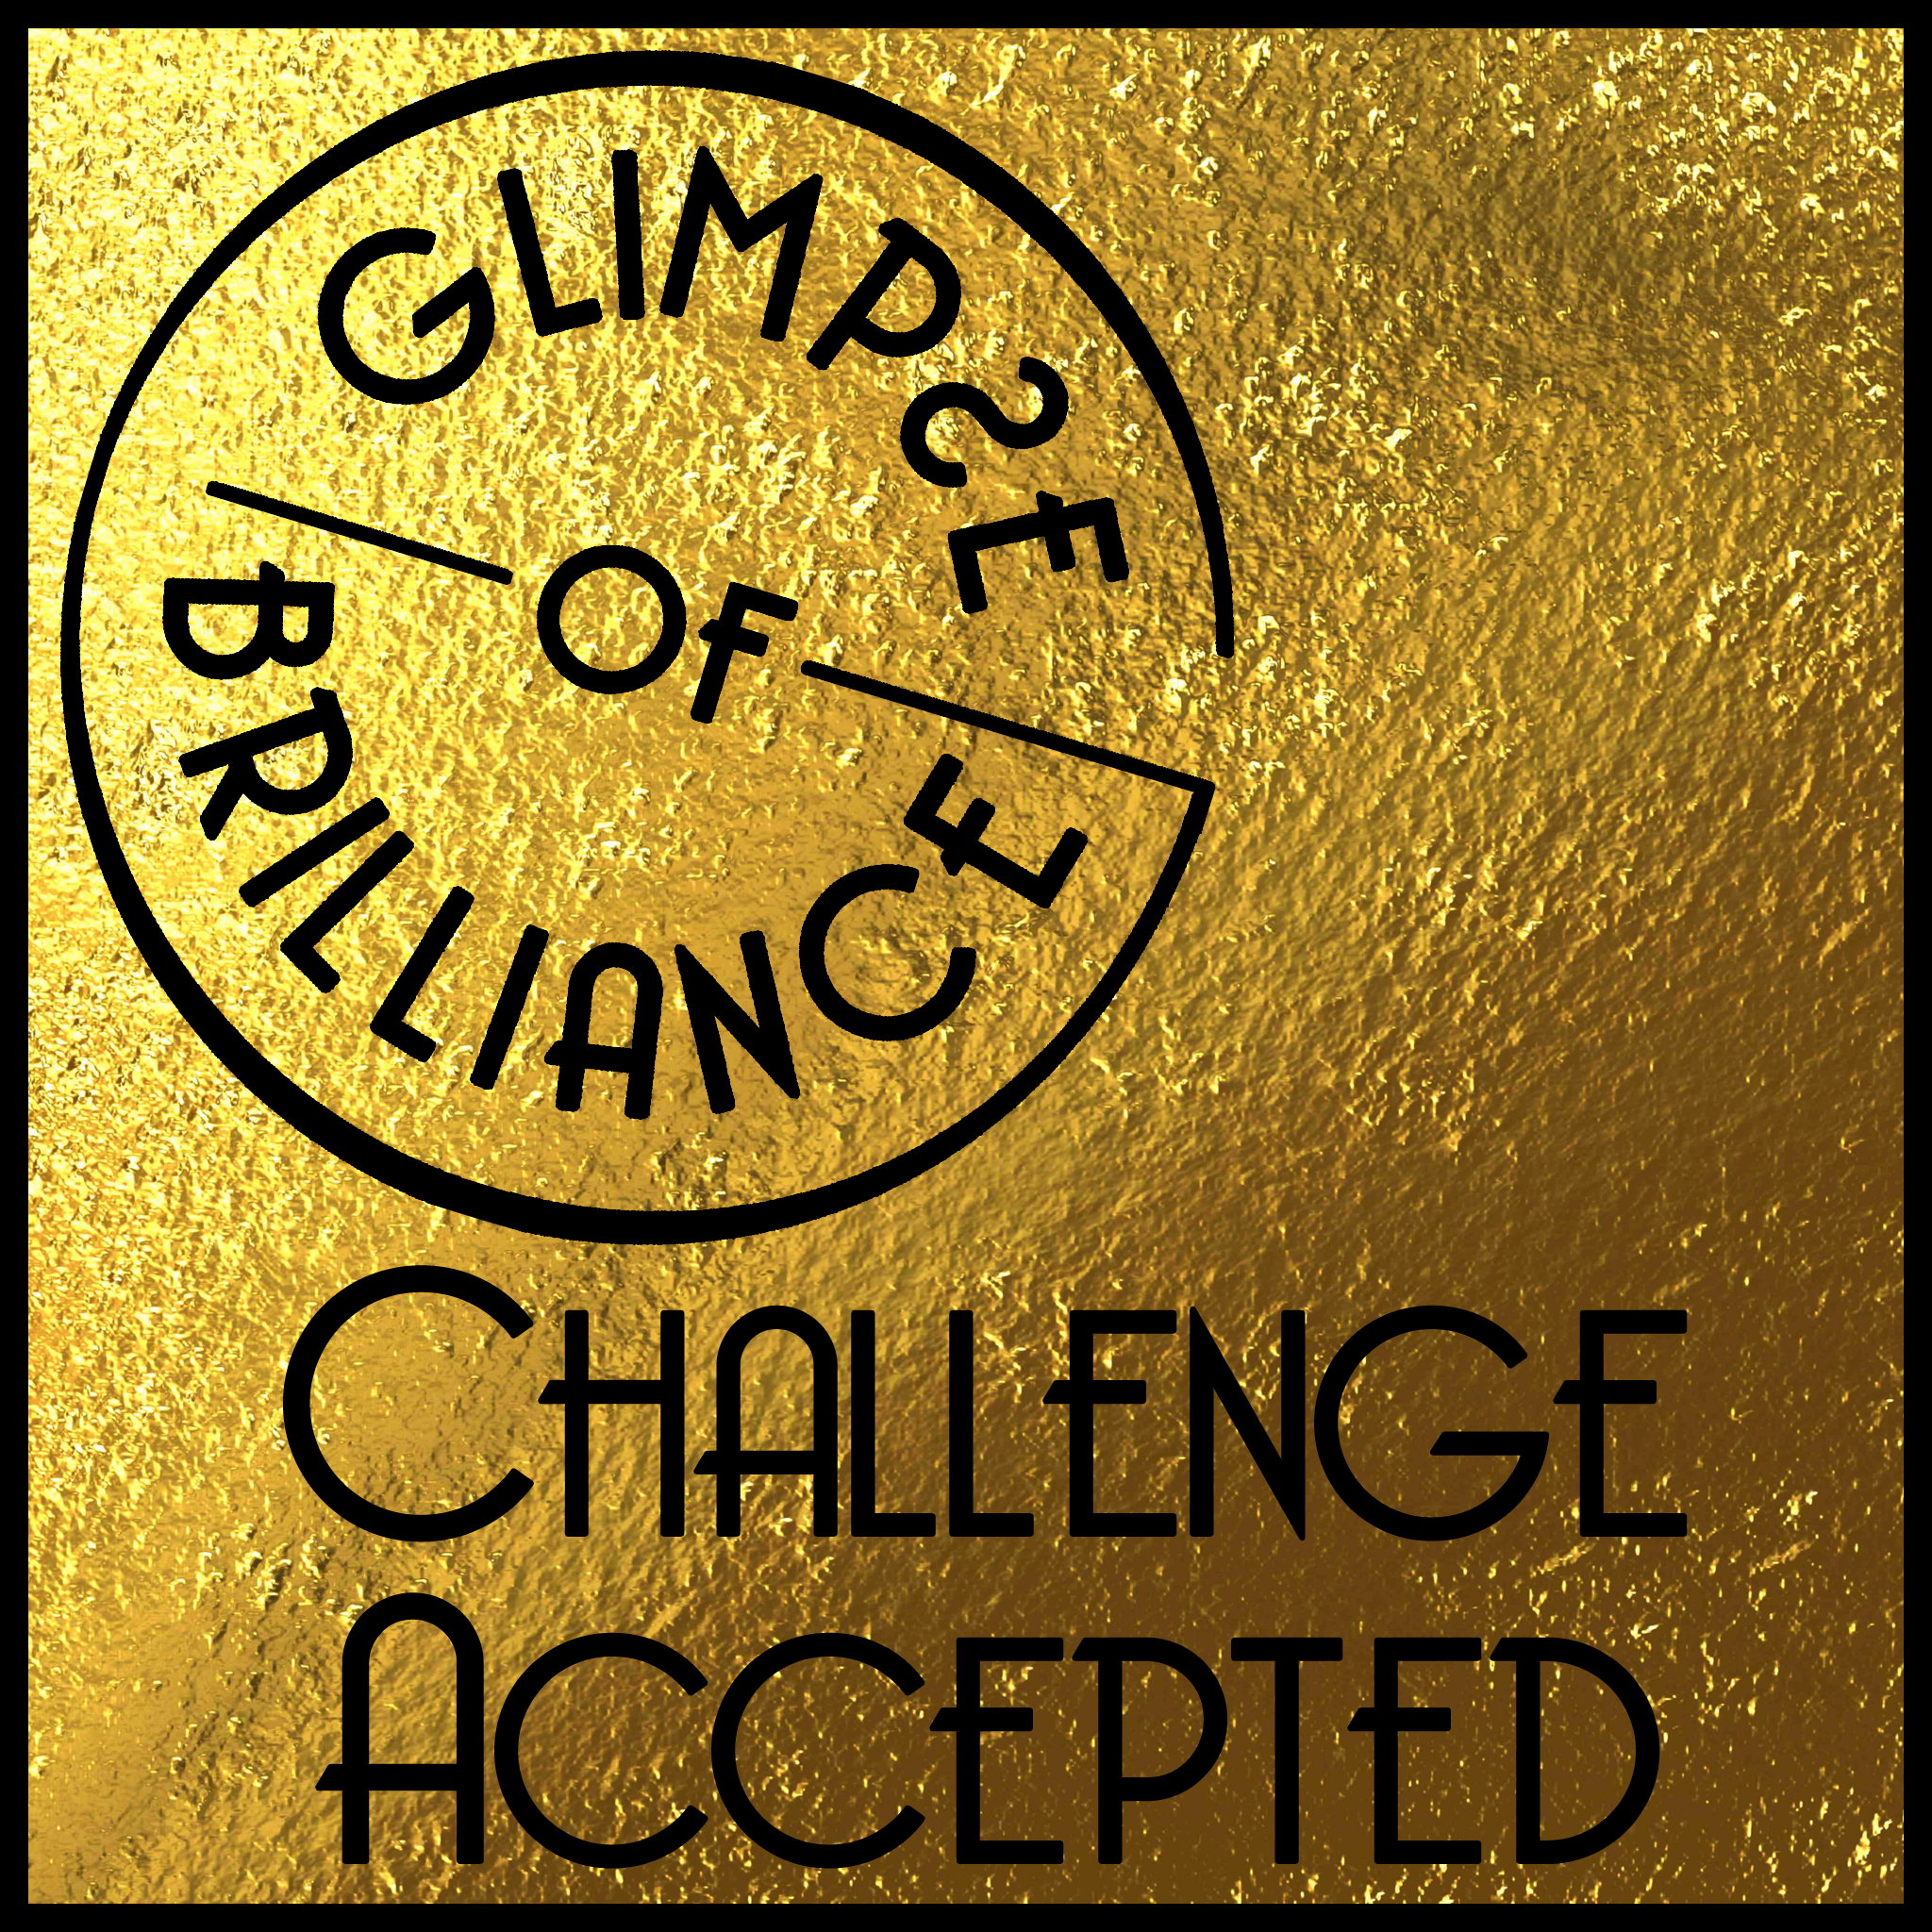 Challenge Accepted - Glimpse of Brilliance